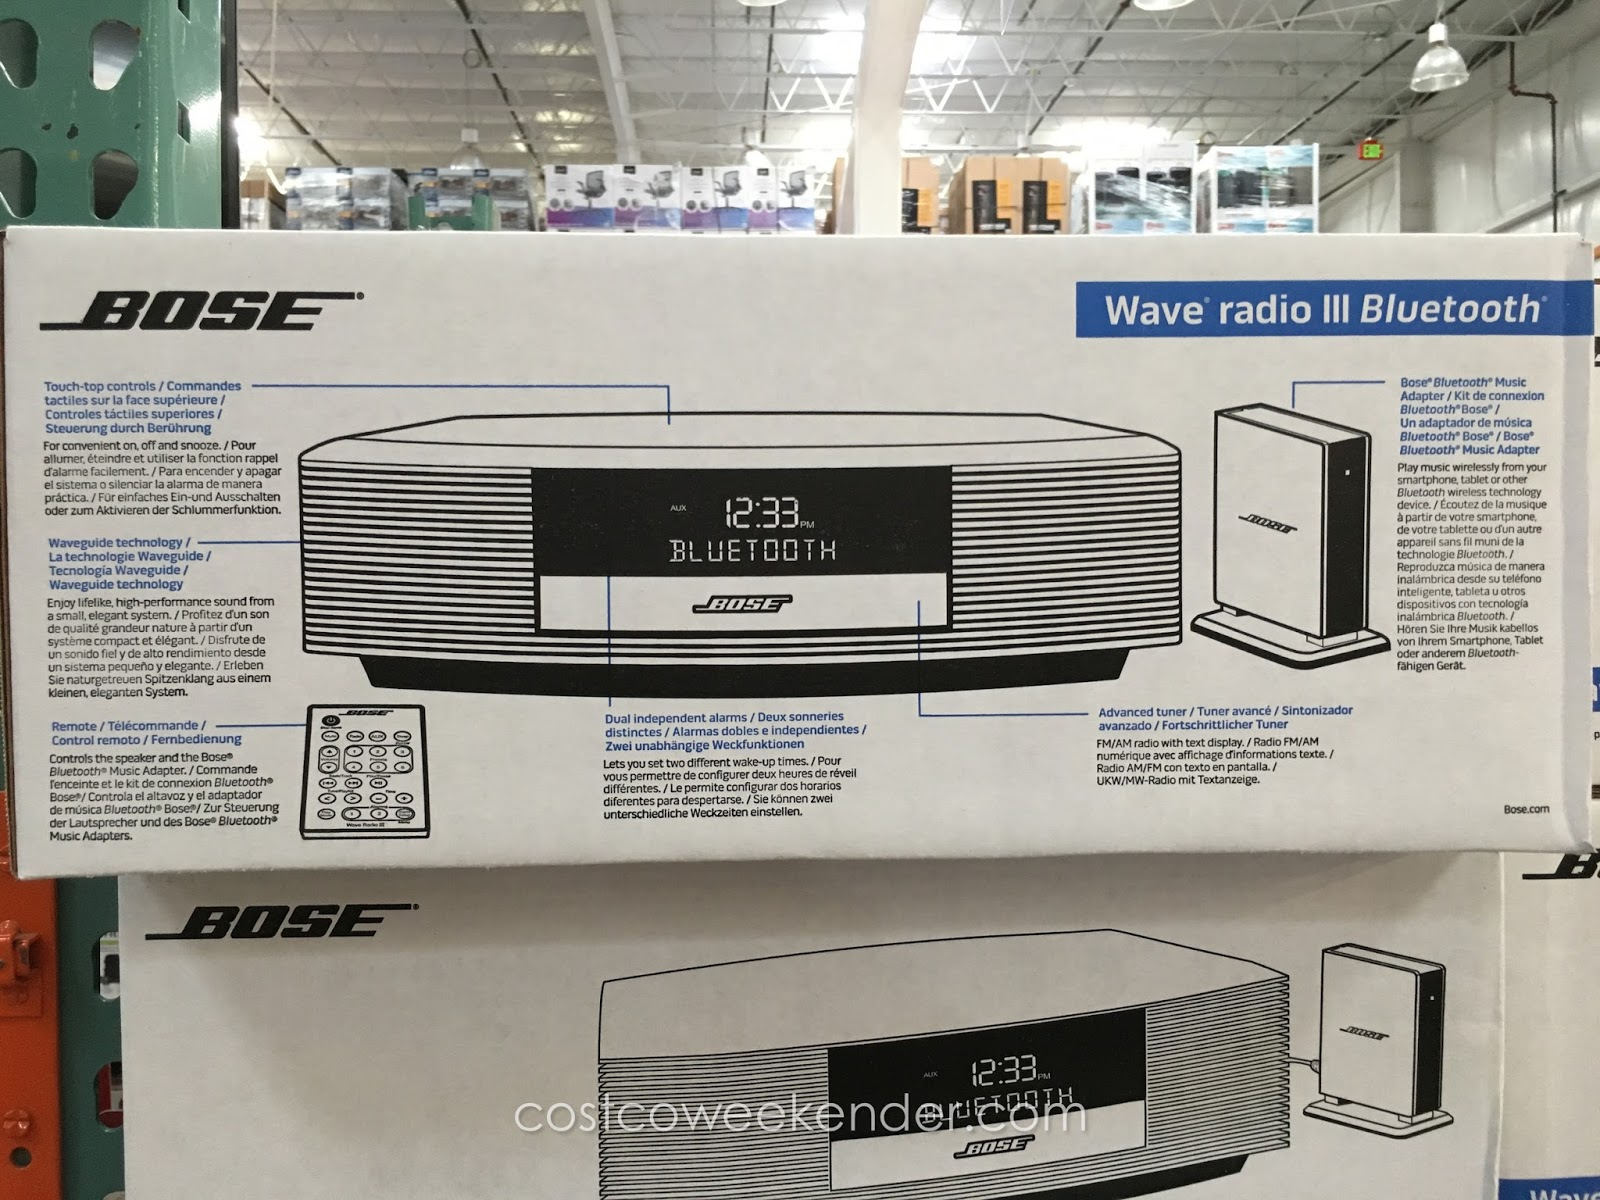 bose wave radio iv manual